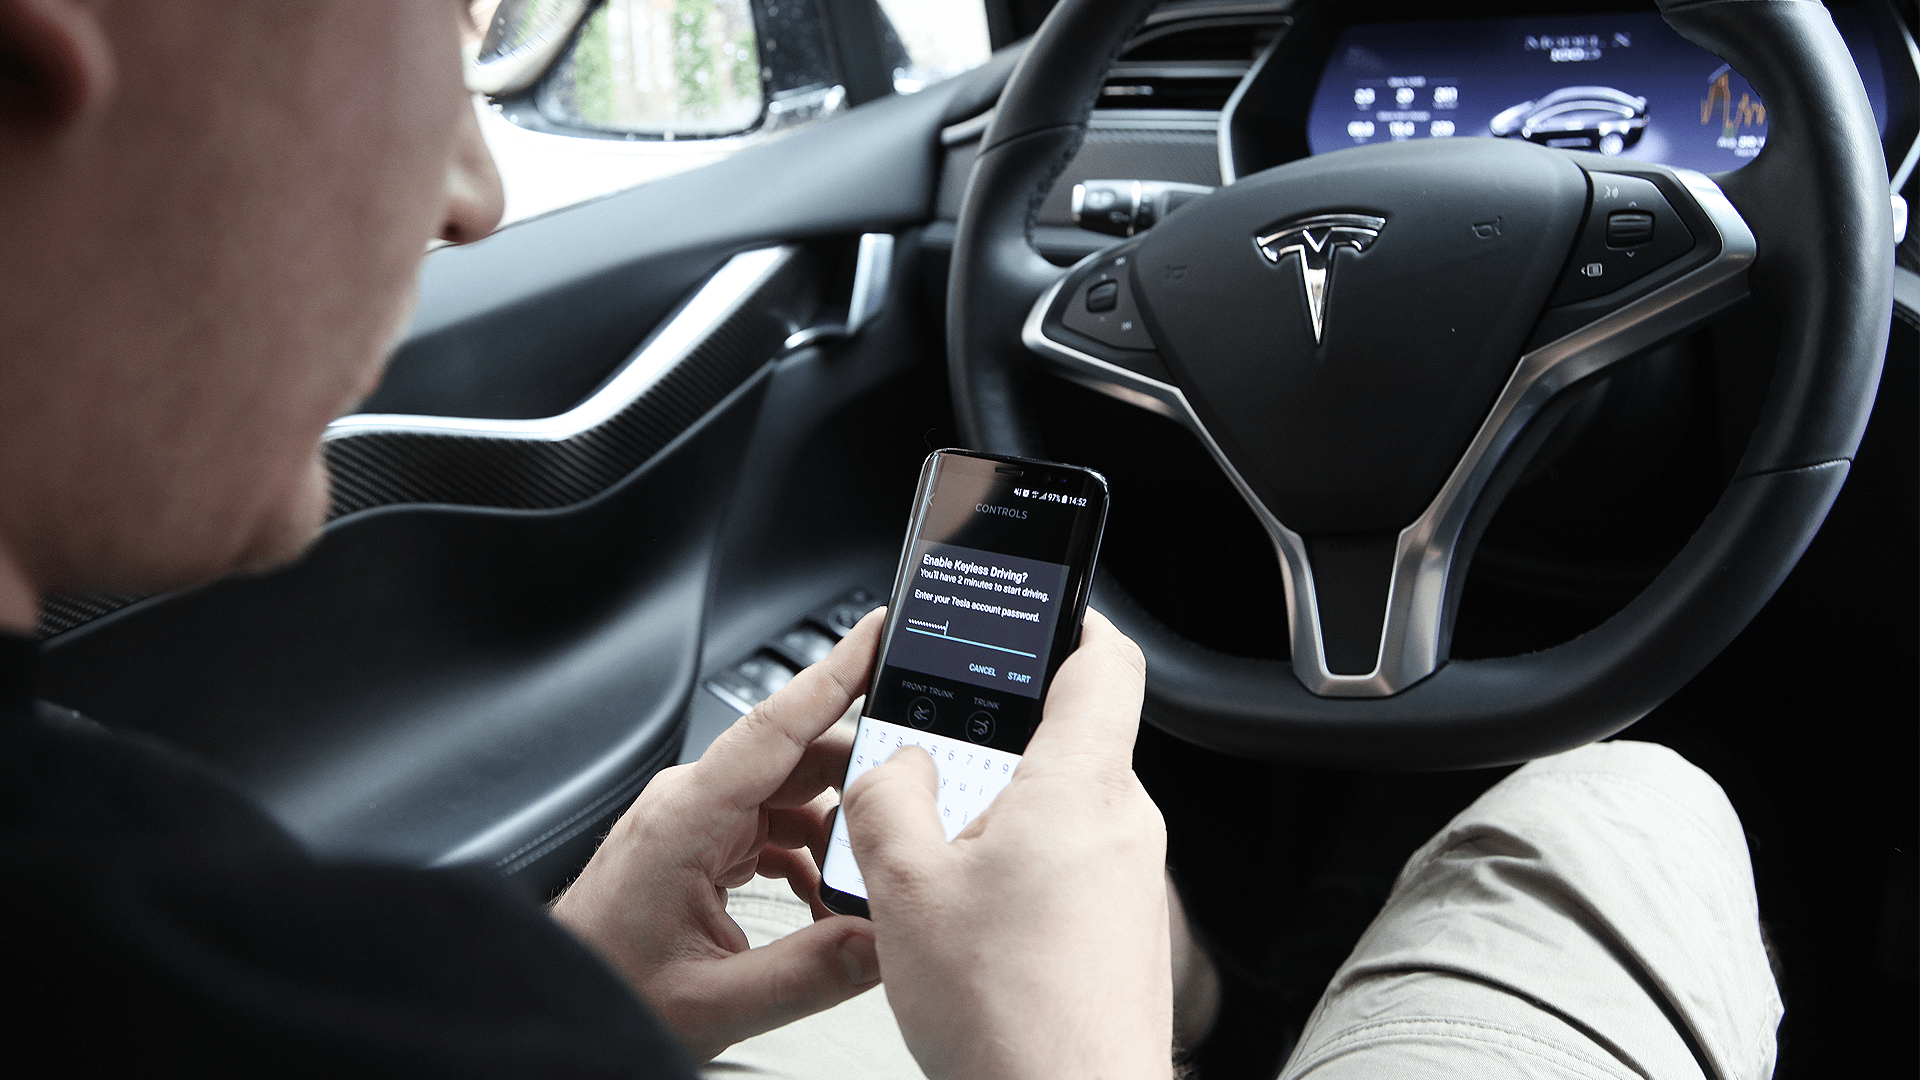 See why the Tesla app is not secure enough | Digital product design and  development company Boldare